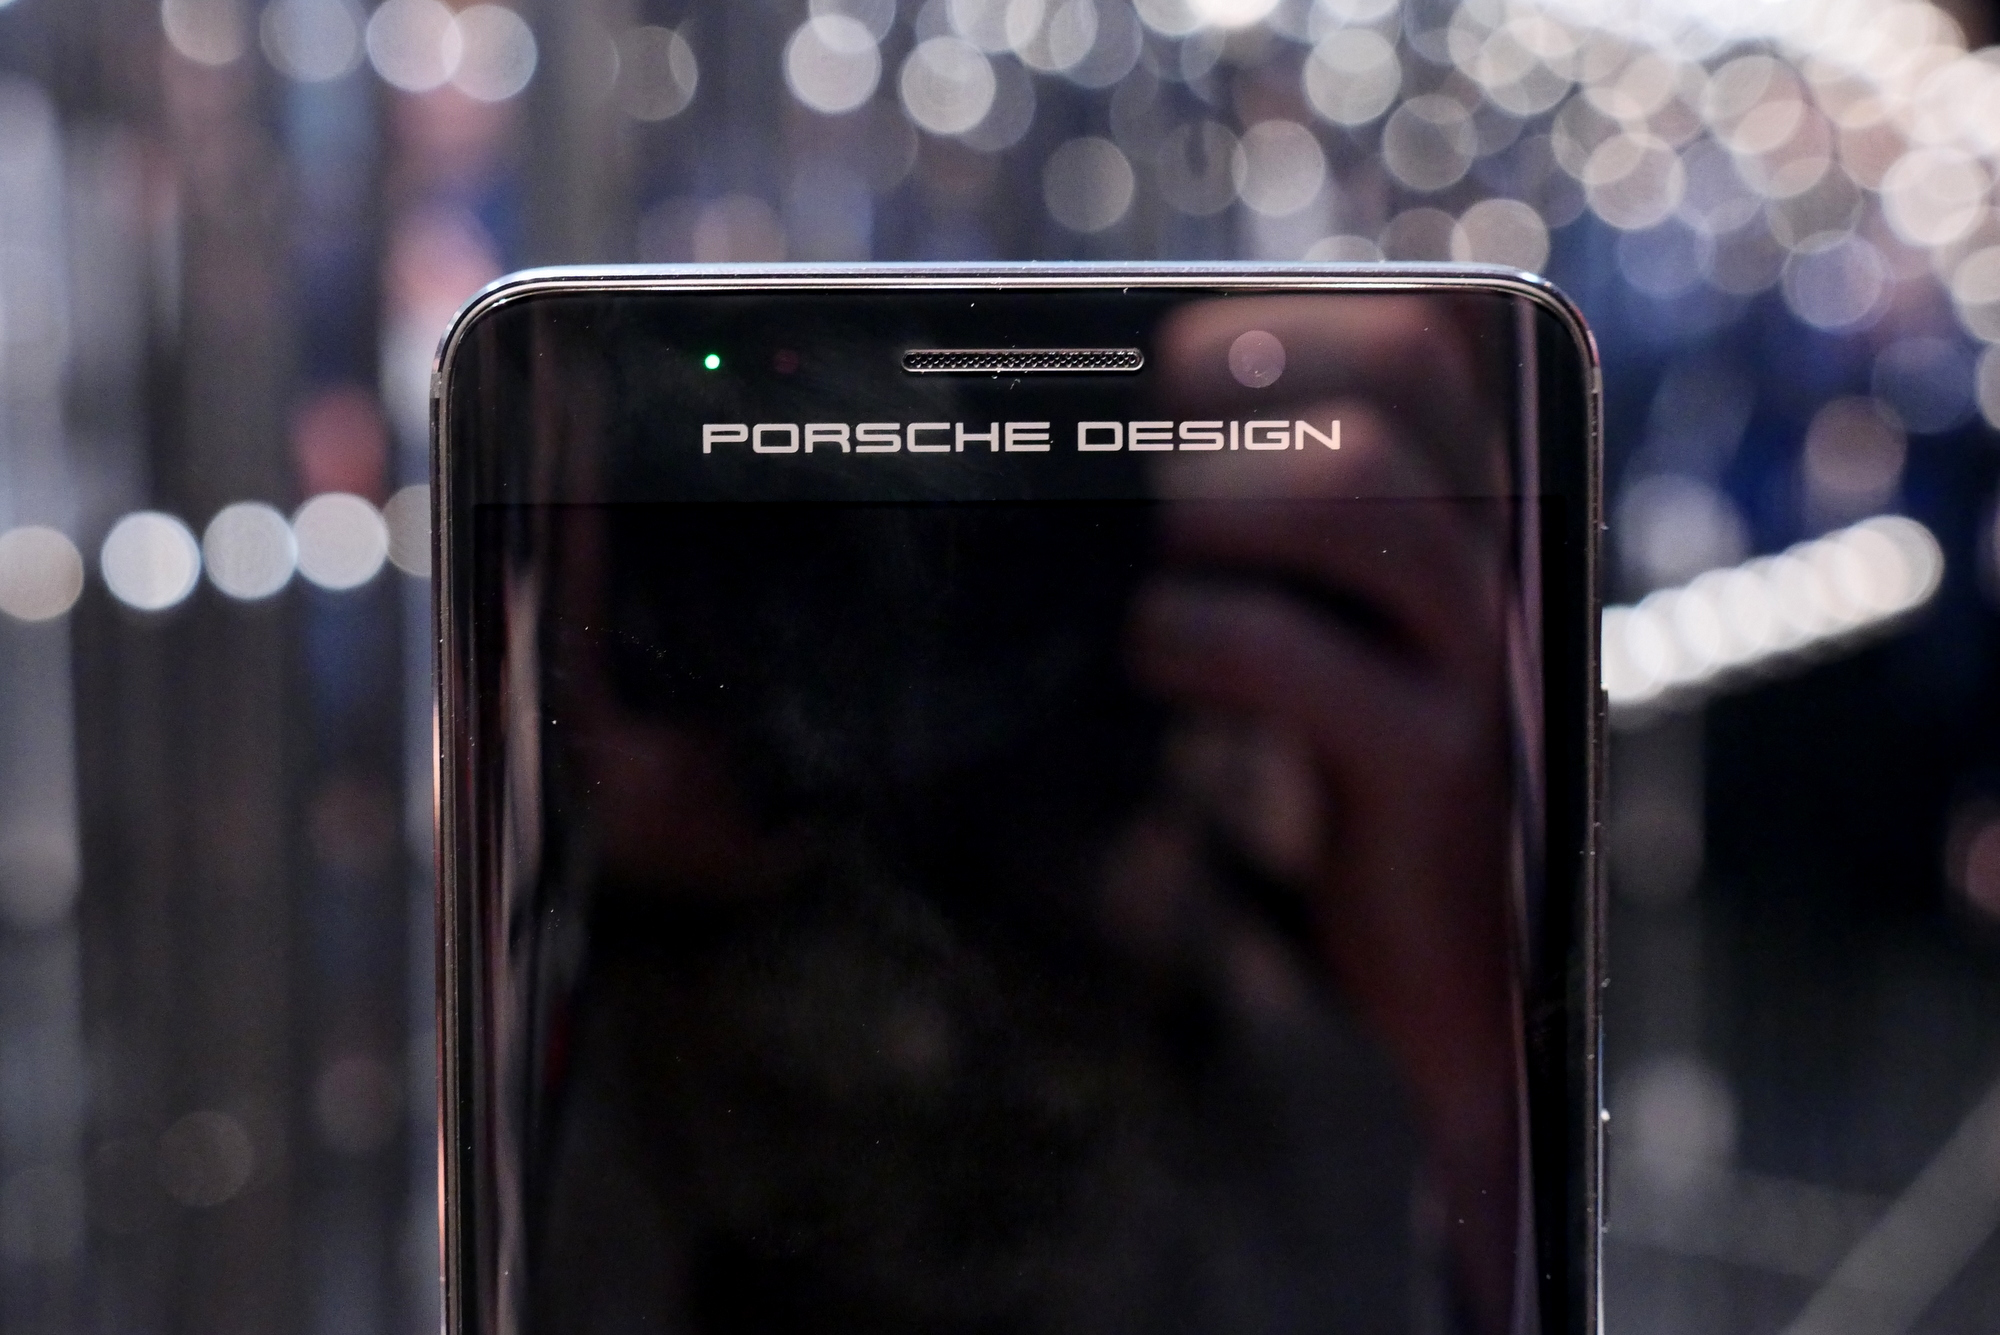 huawei mate 9 porsche design mate 9 pro first look video. Black Bedroom Furniture Sets. Home Design Ideas